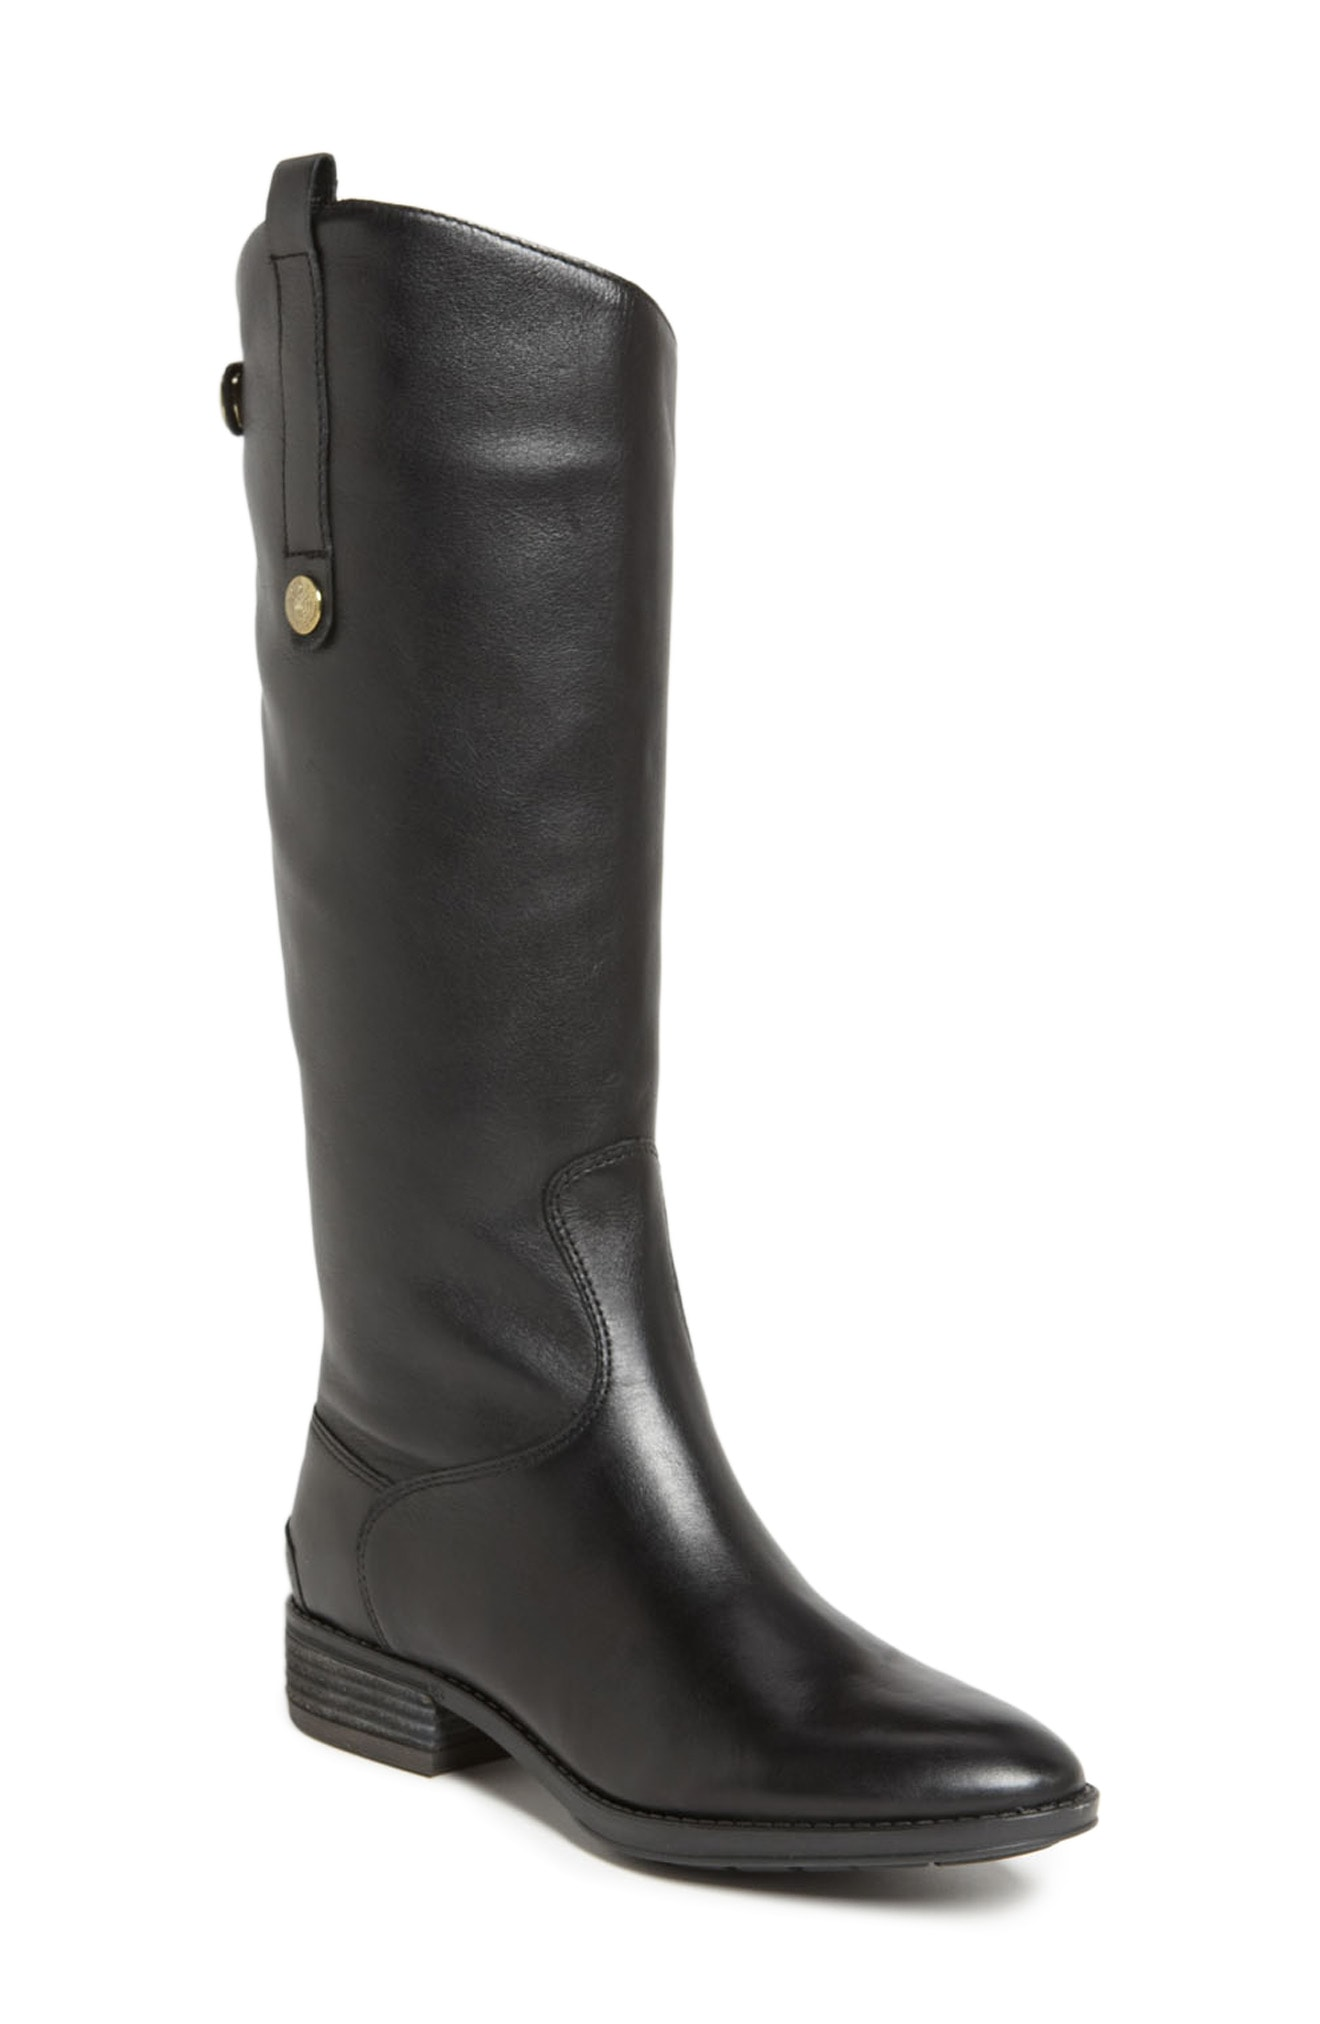 Women's Riding Boots | Nordstrom